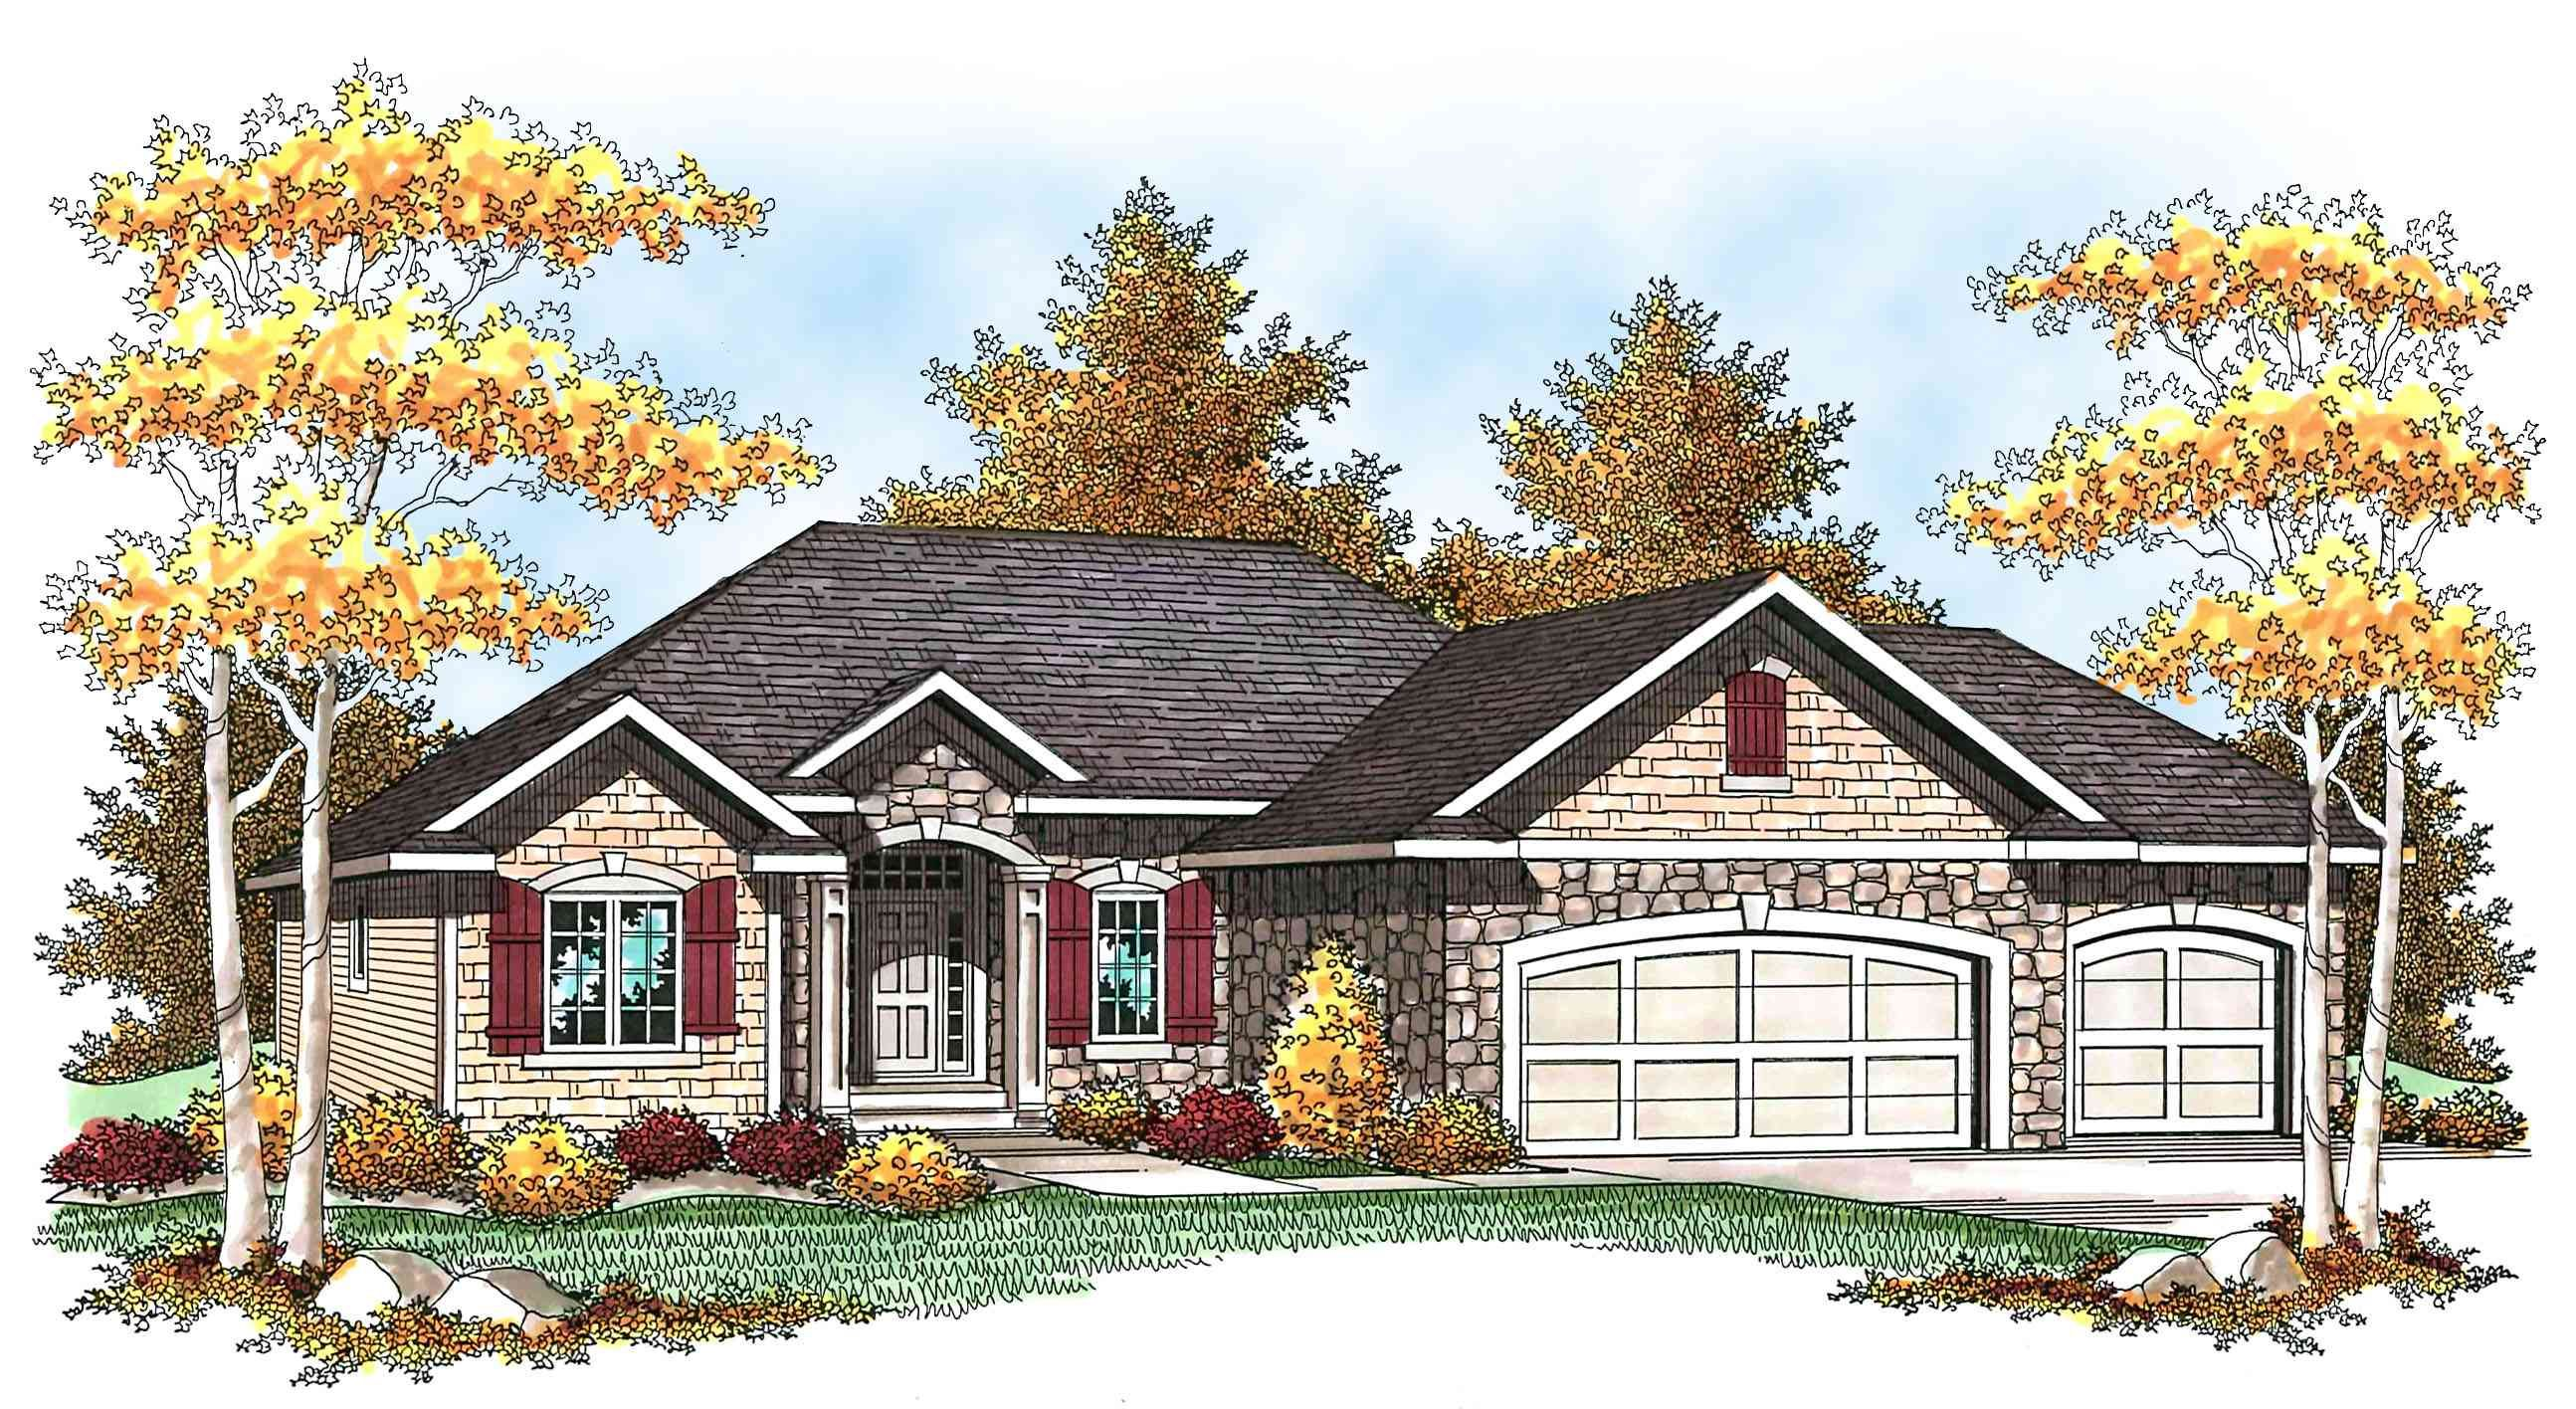 Cathedral 4 Season Porch - 89903AH | 1st Floor Master Suite, CAD Available, Jack & Jill Bath, PDF, Ranch, Split Bedrooms, Traditional | Architectural Designs